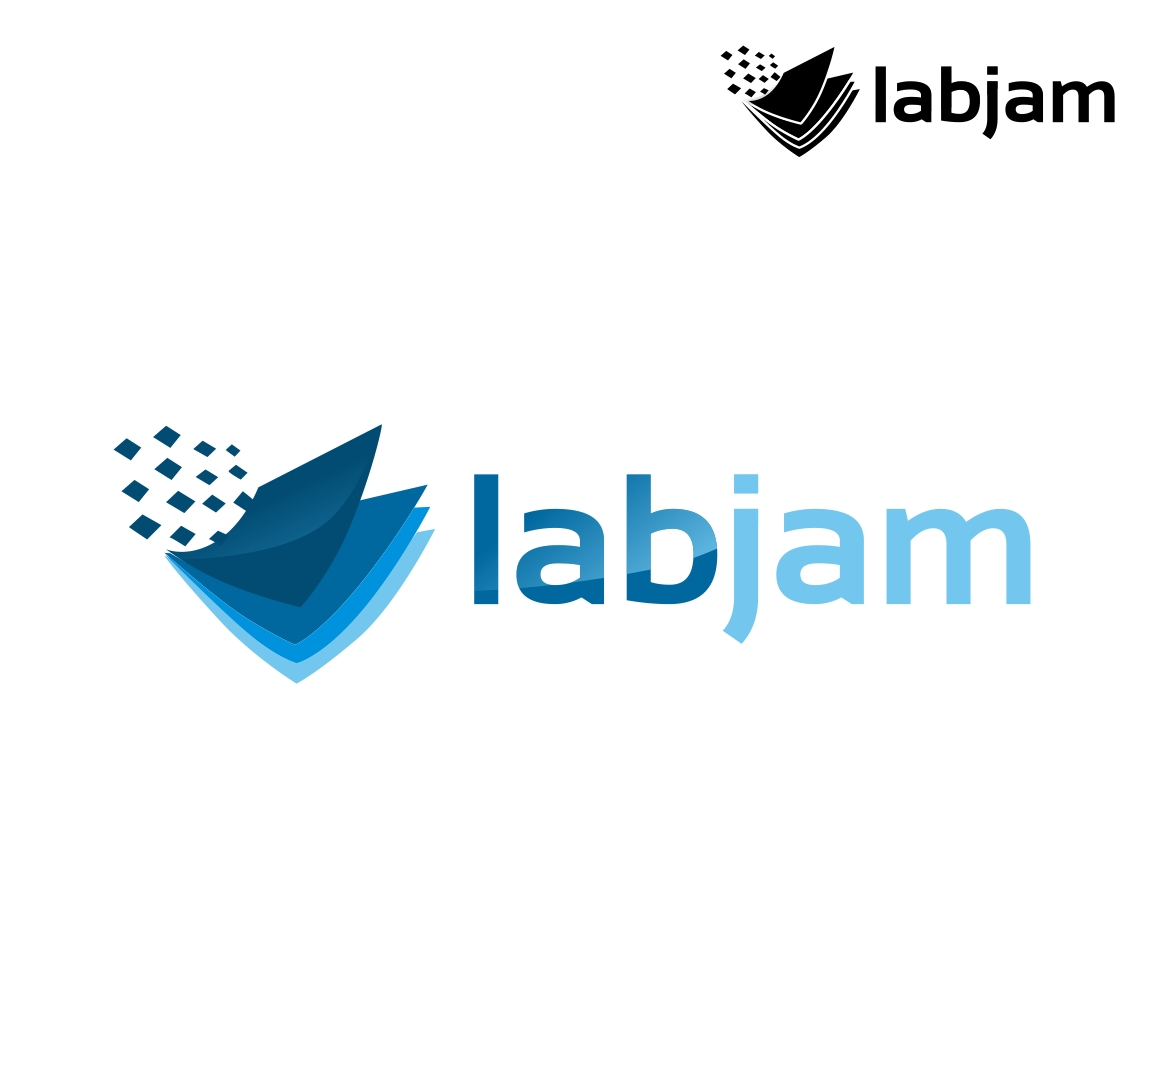 Logo Design by arkvisdesigns - Entry No. 91 in the Logo Design Contest Labjam.